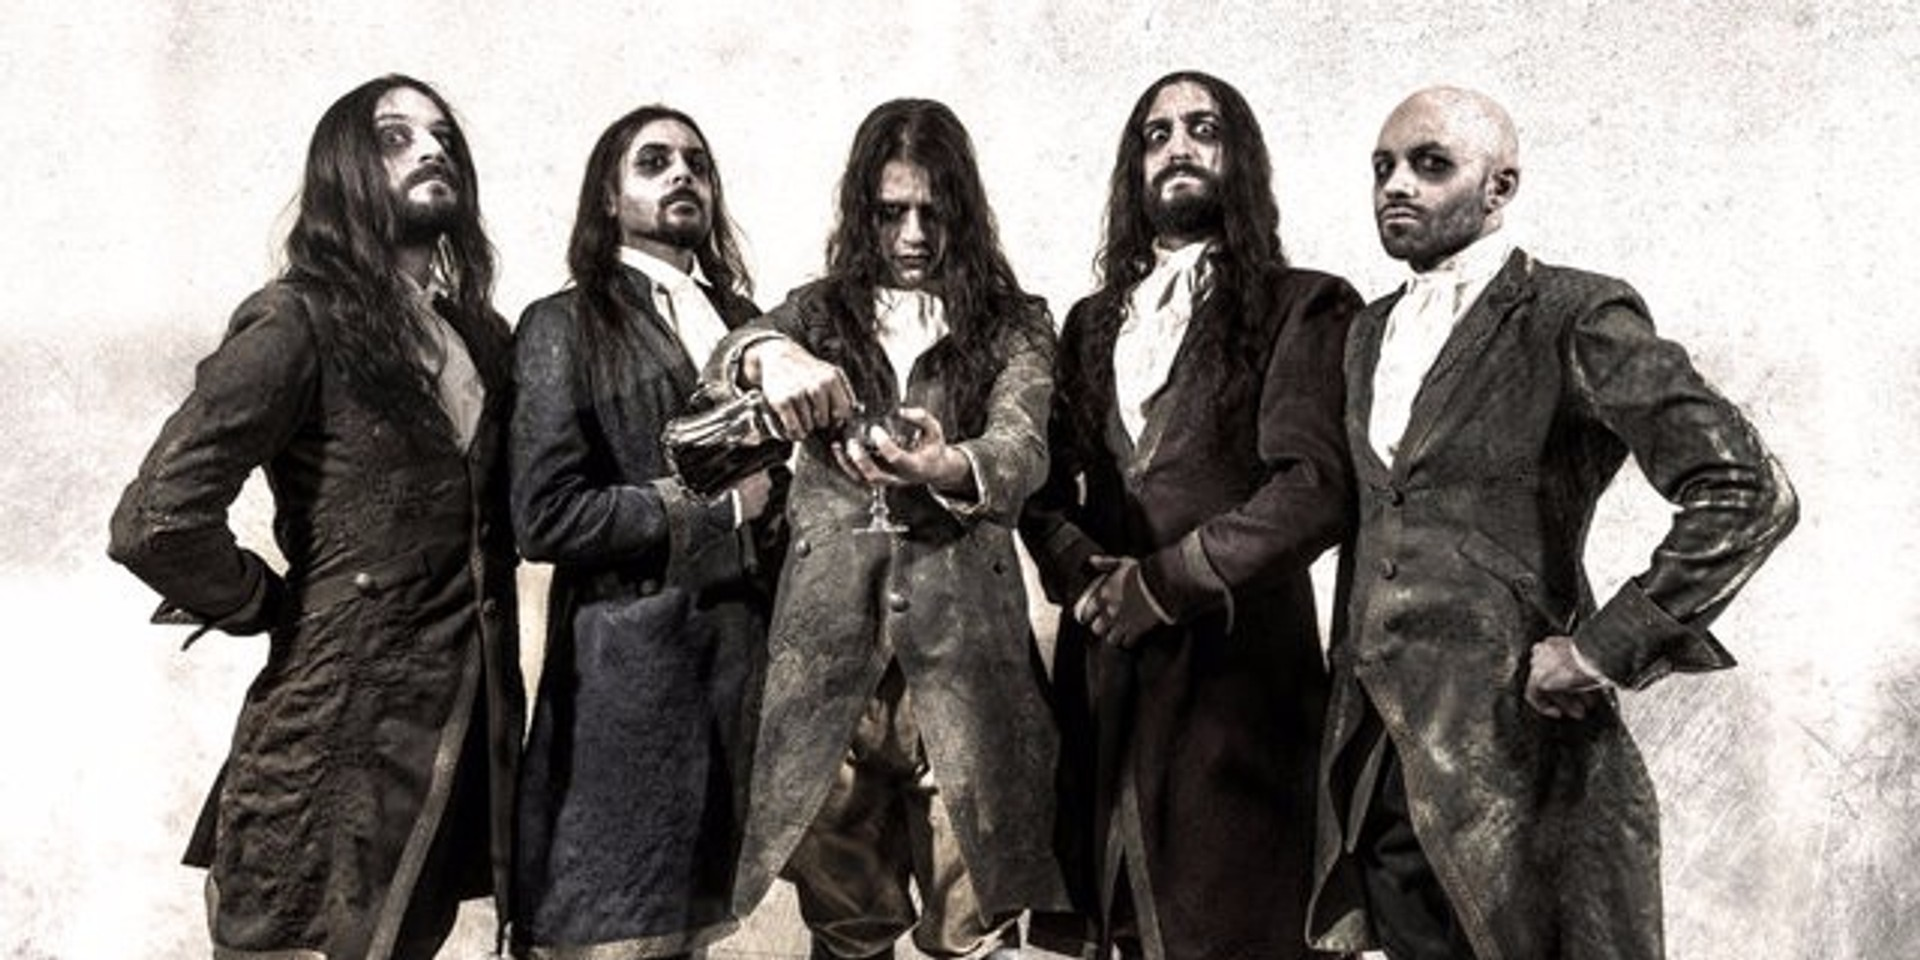 Death metal band Fleshgod Apocalypse to perform in Singapore next month